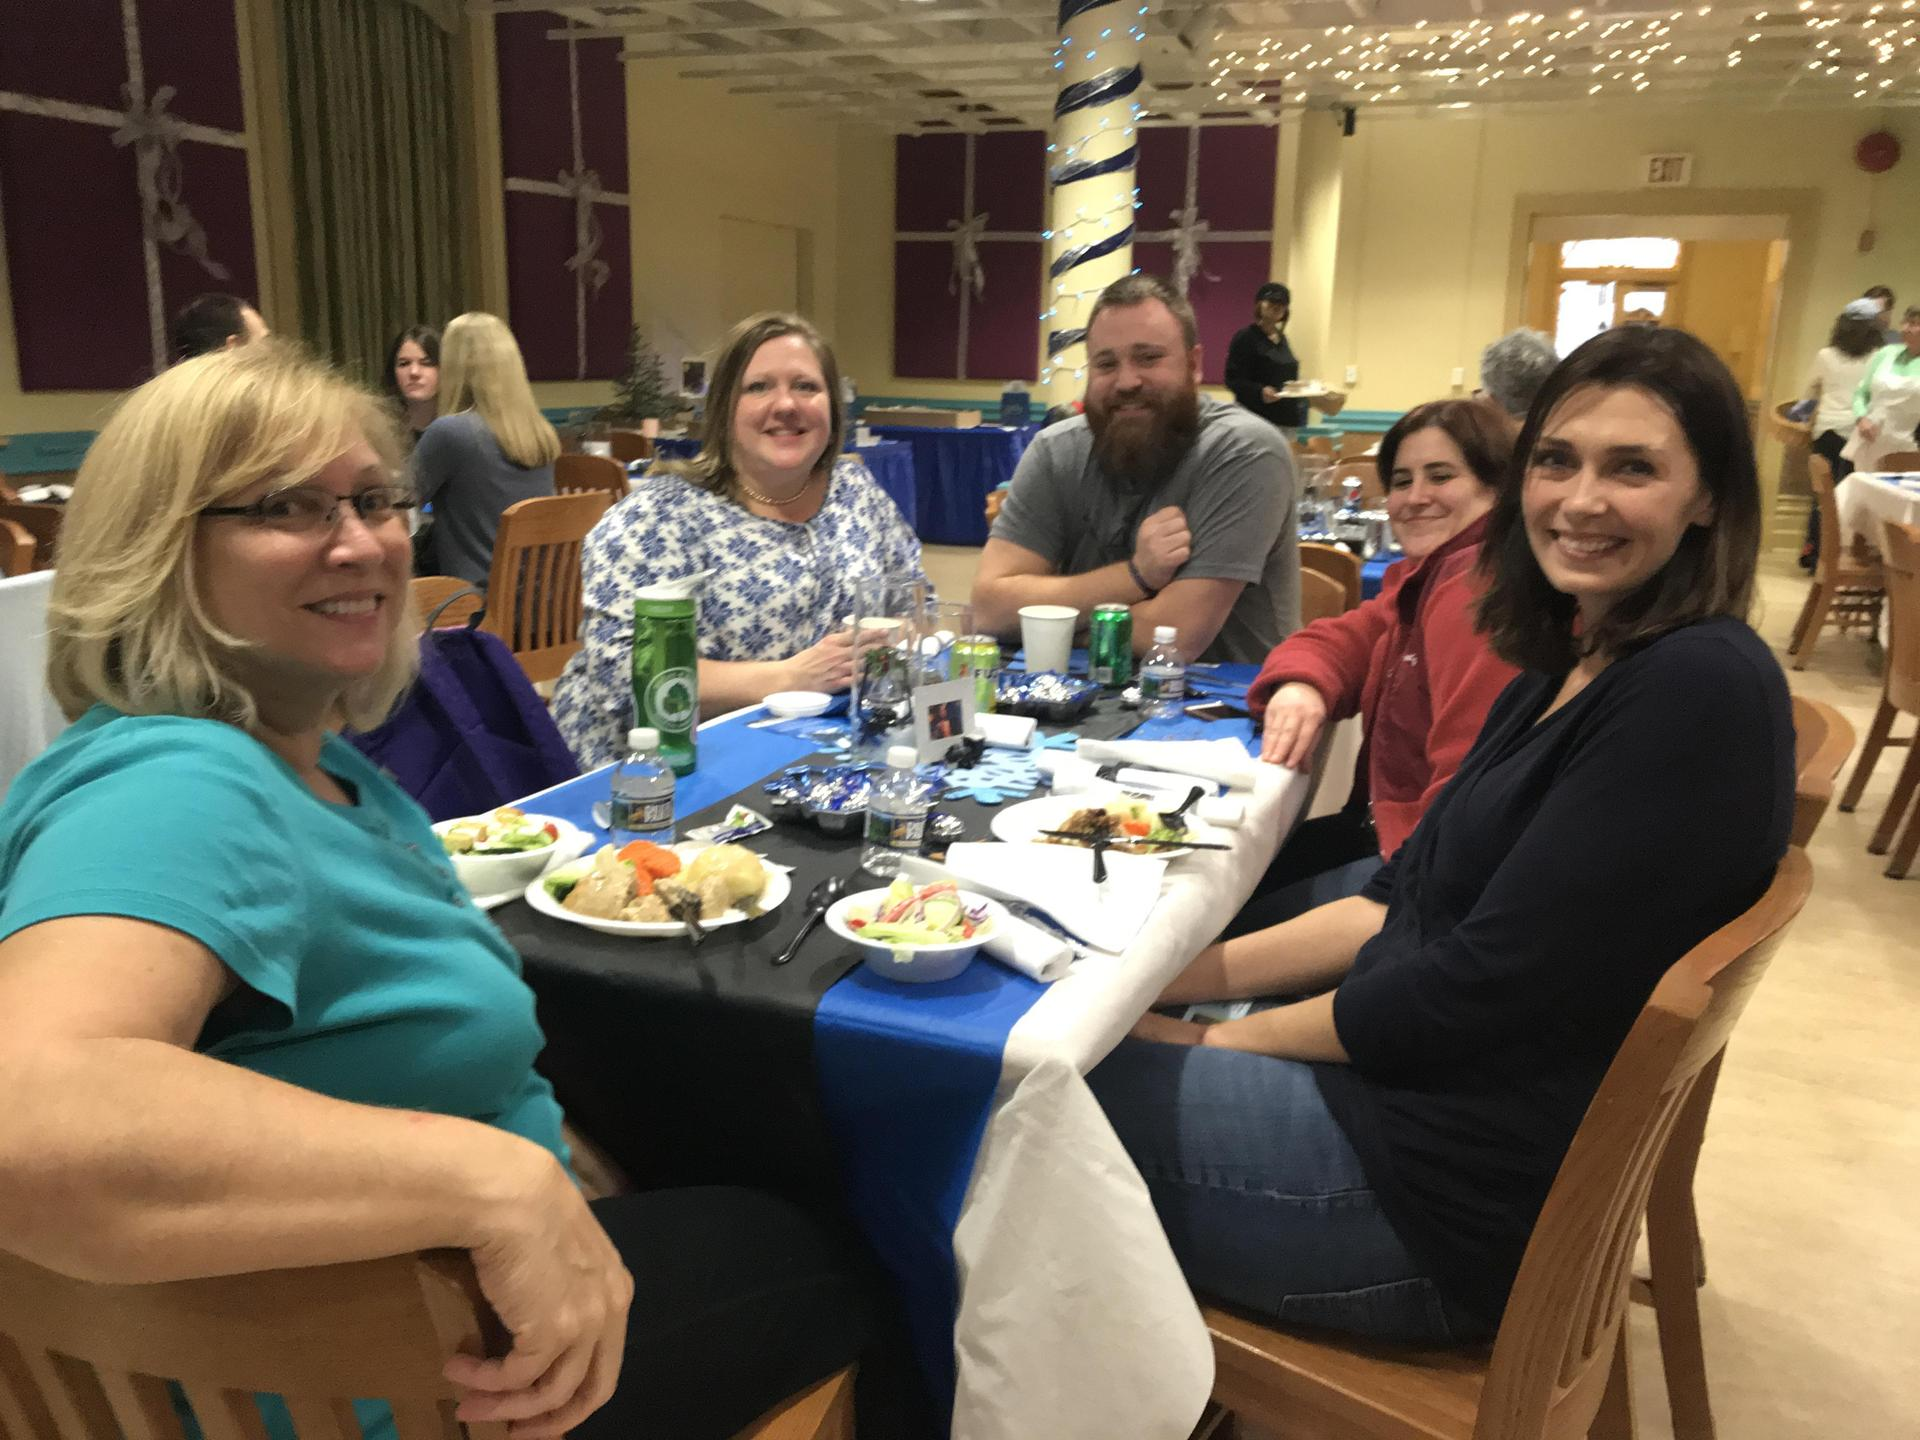 five staff members sit at a table enjoying a holiday meal